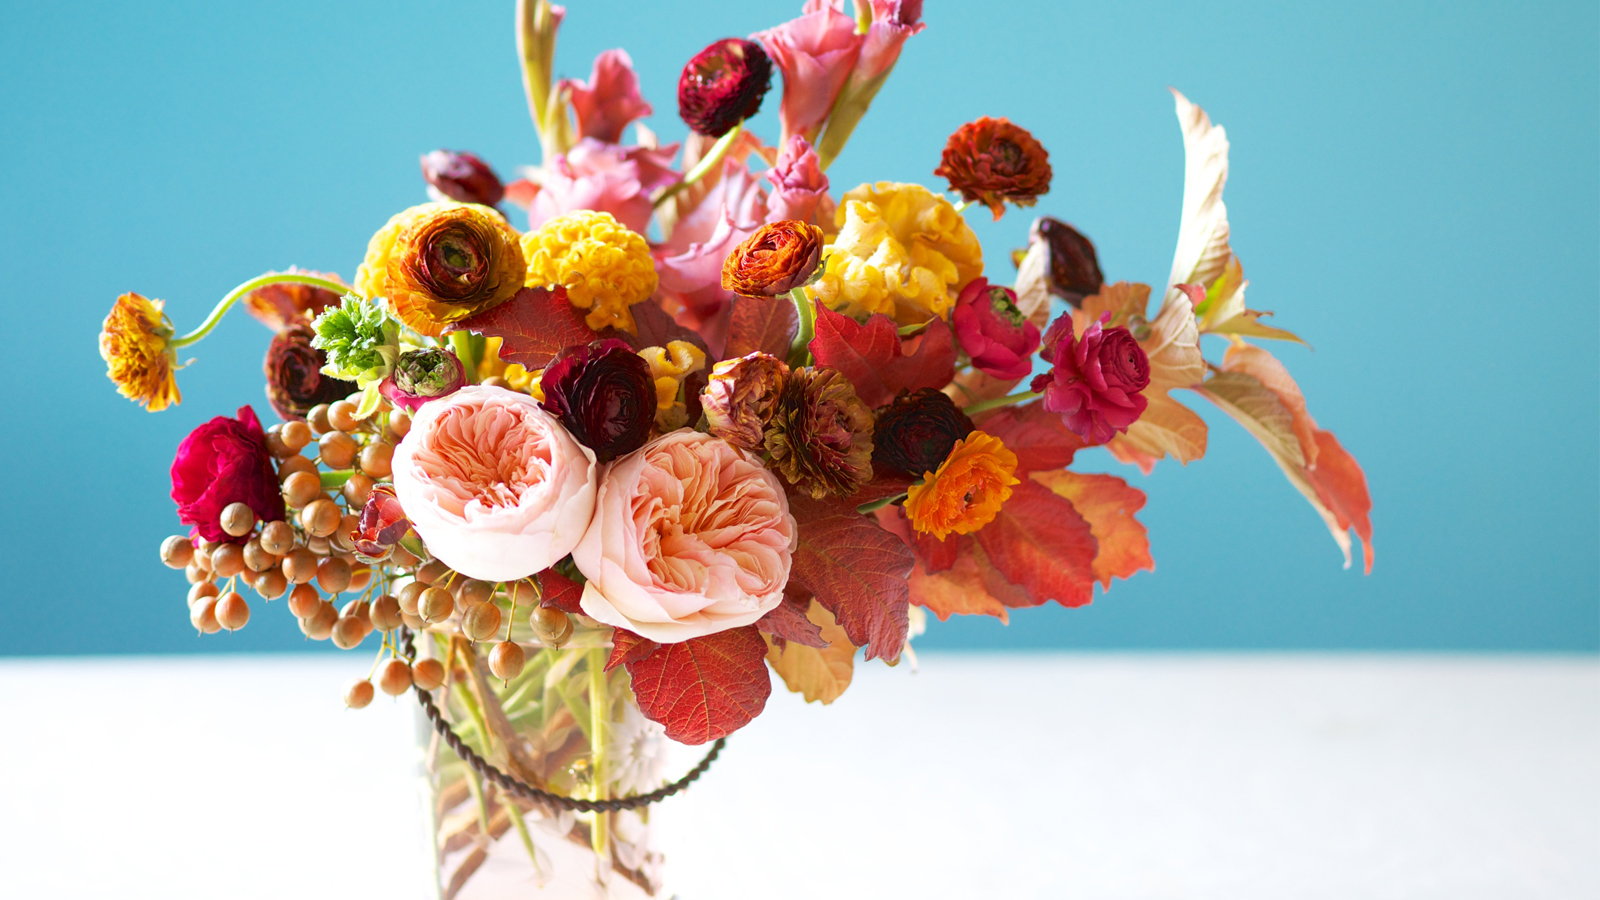 Create Meaningful Wedding Flower Centerpieces And Bouquets